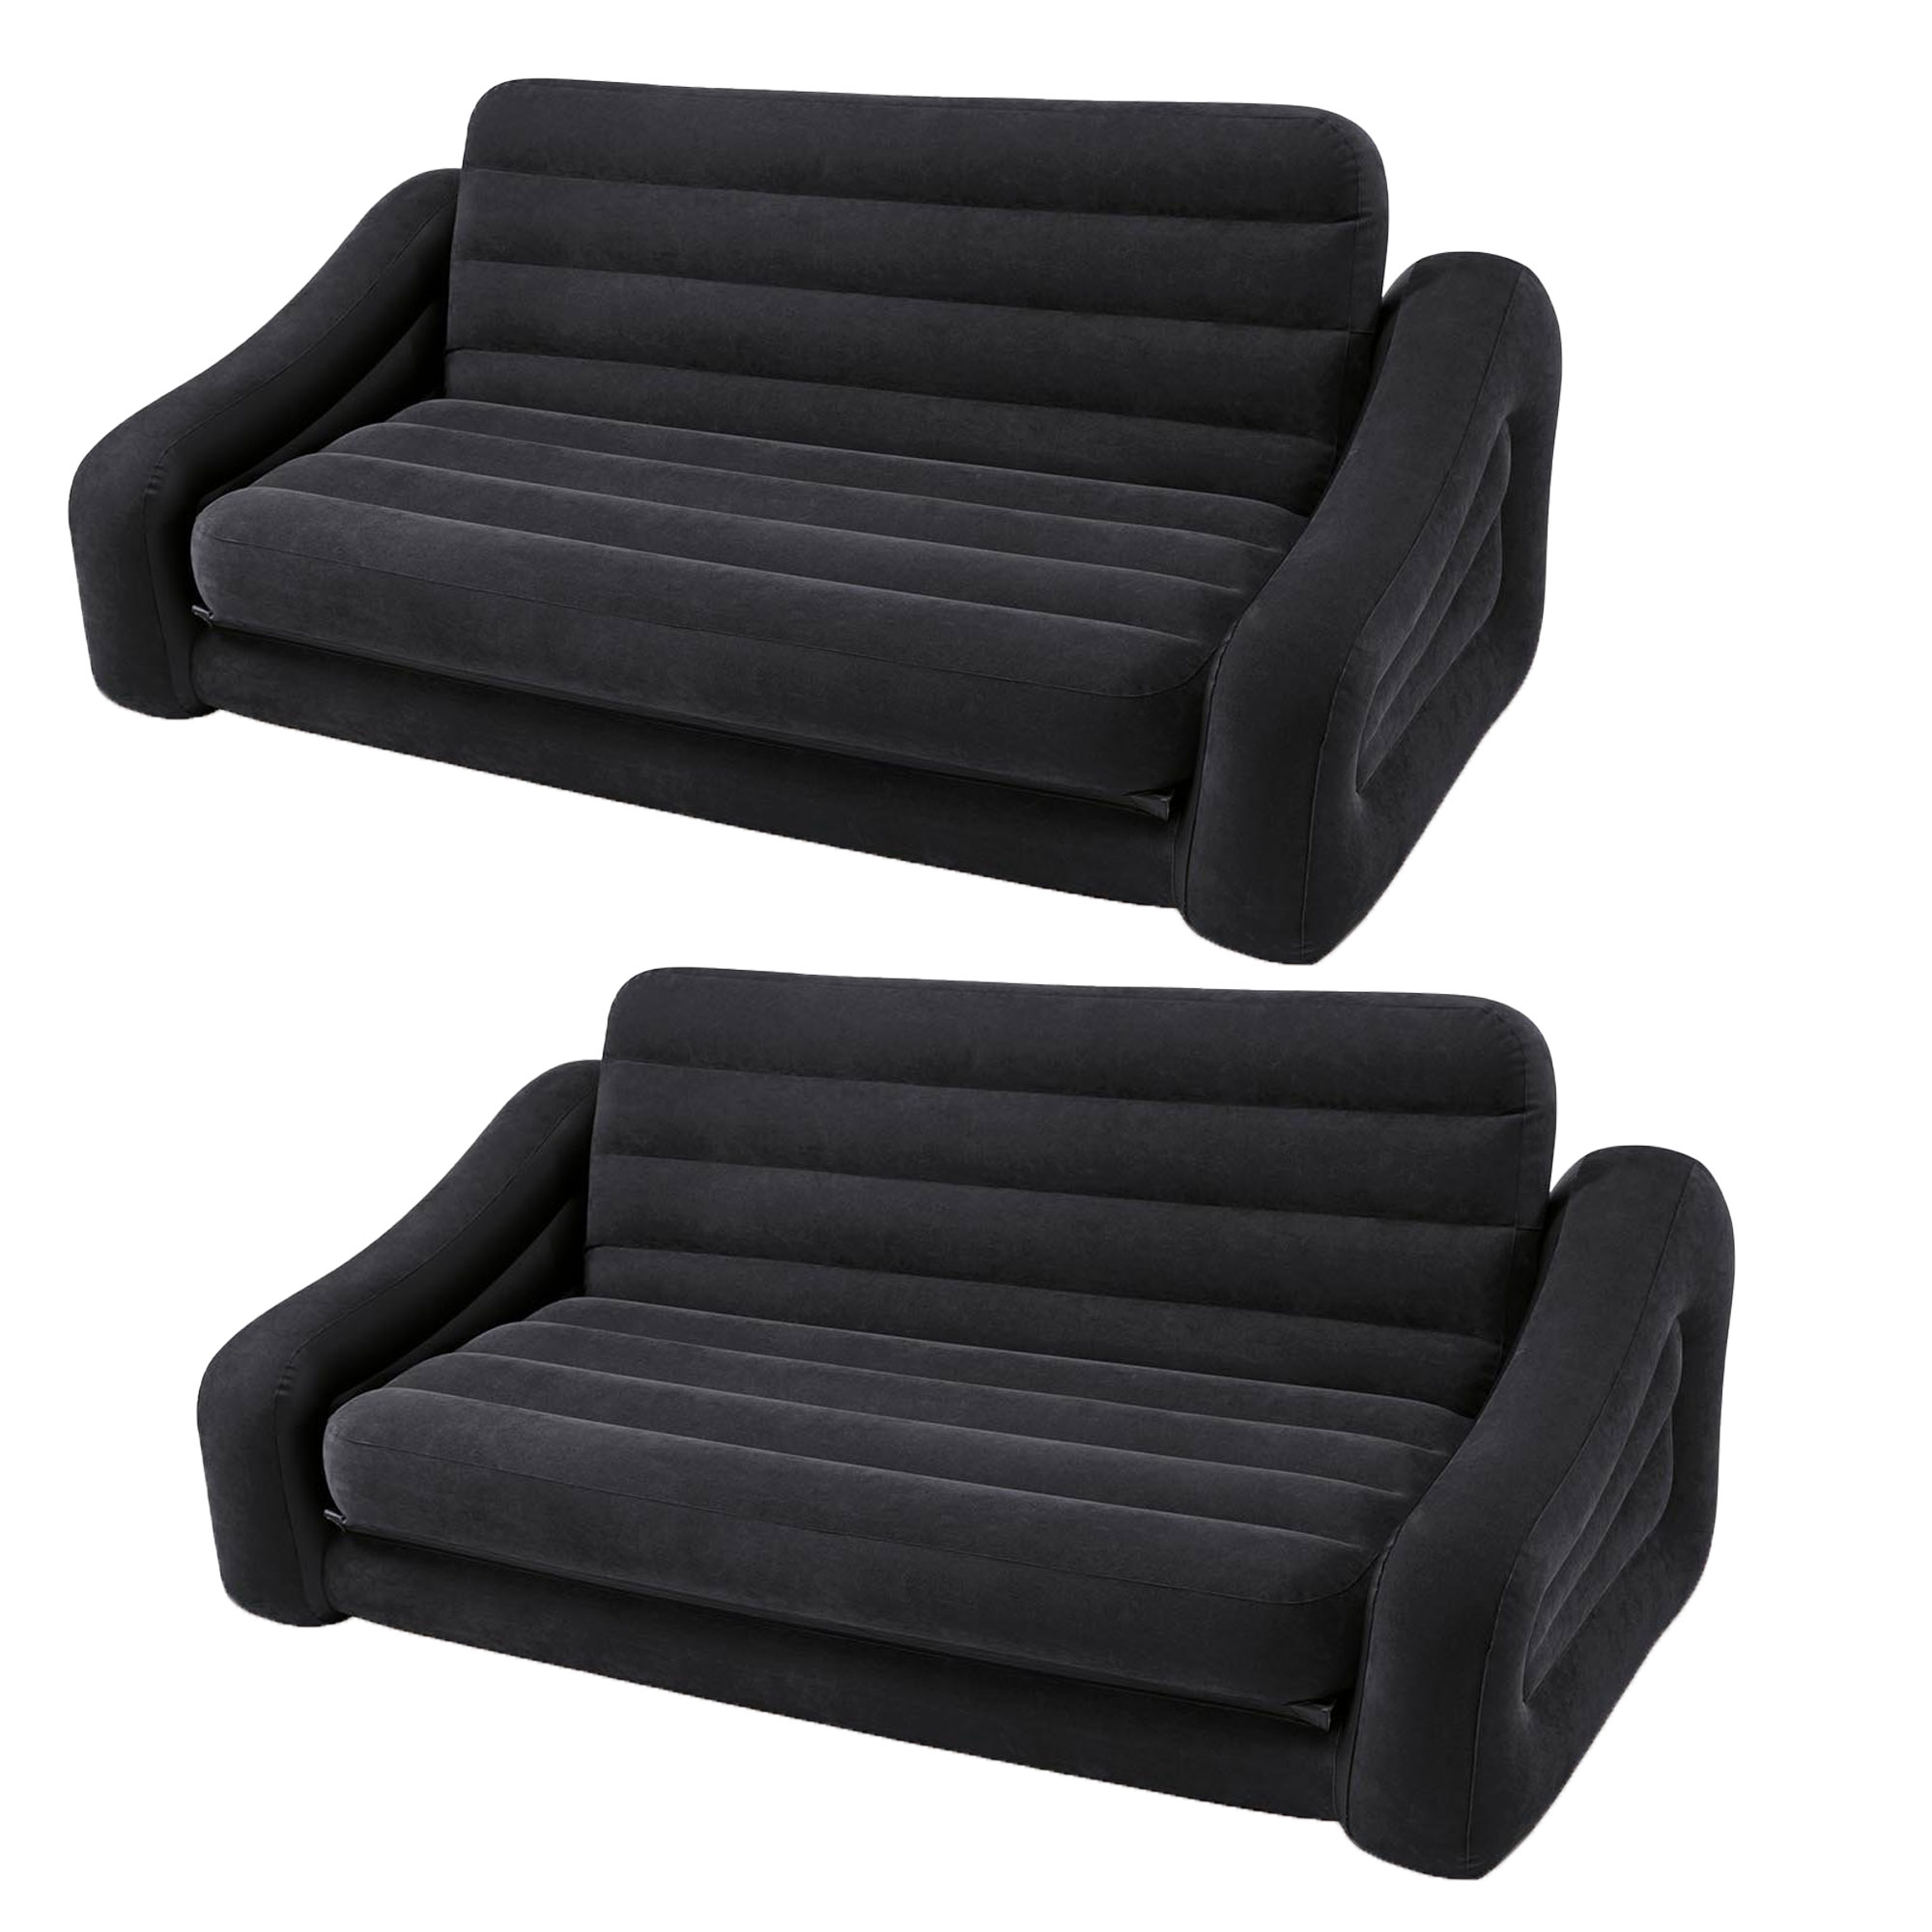 Intex Inflatable Queen Size Pull Out Futon Sofa Couch Bed, Dark Gray (2 Pack) by Intex